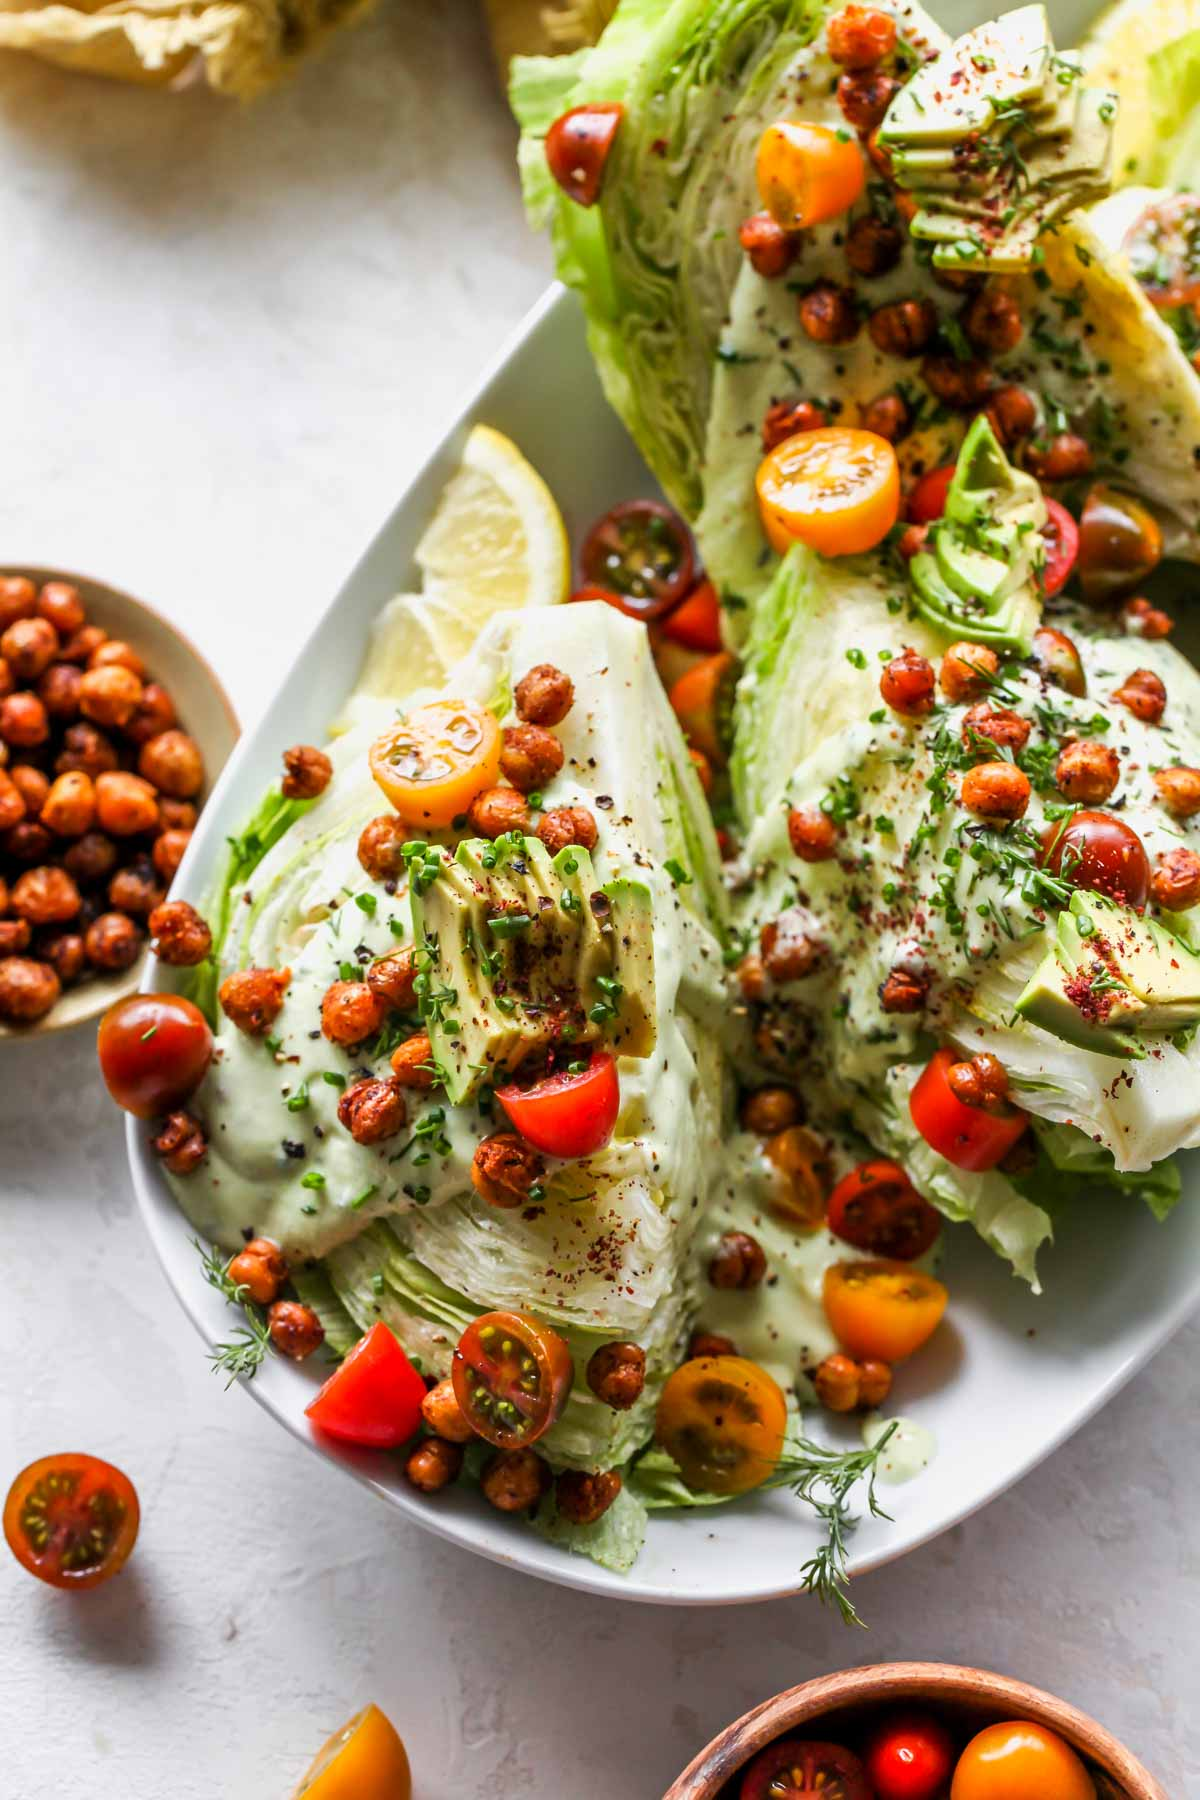 Wedge salad on a platter topped with tomatoes, avocado, and herbs